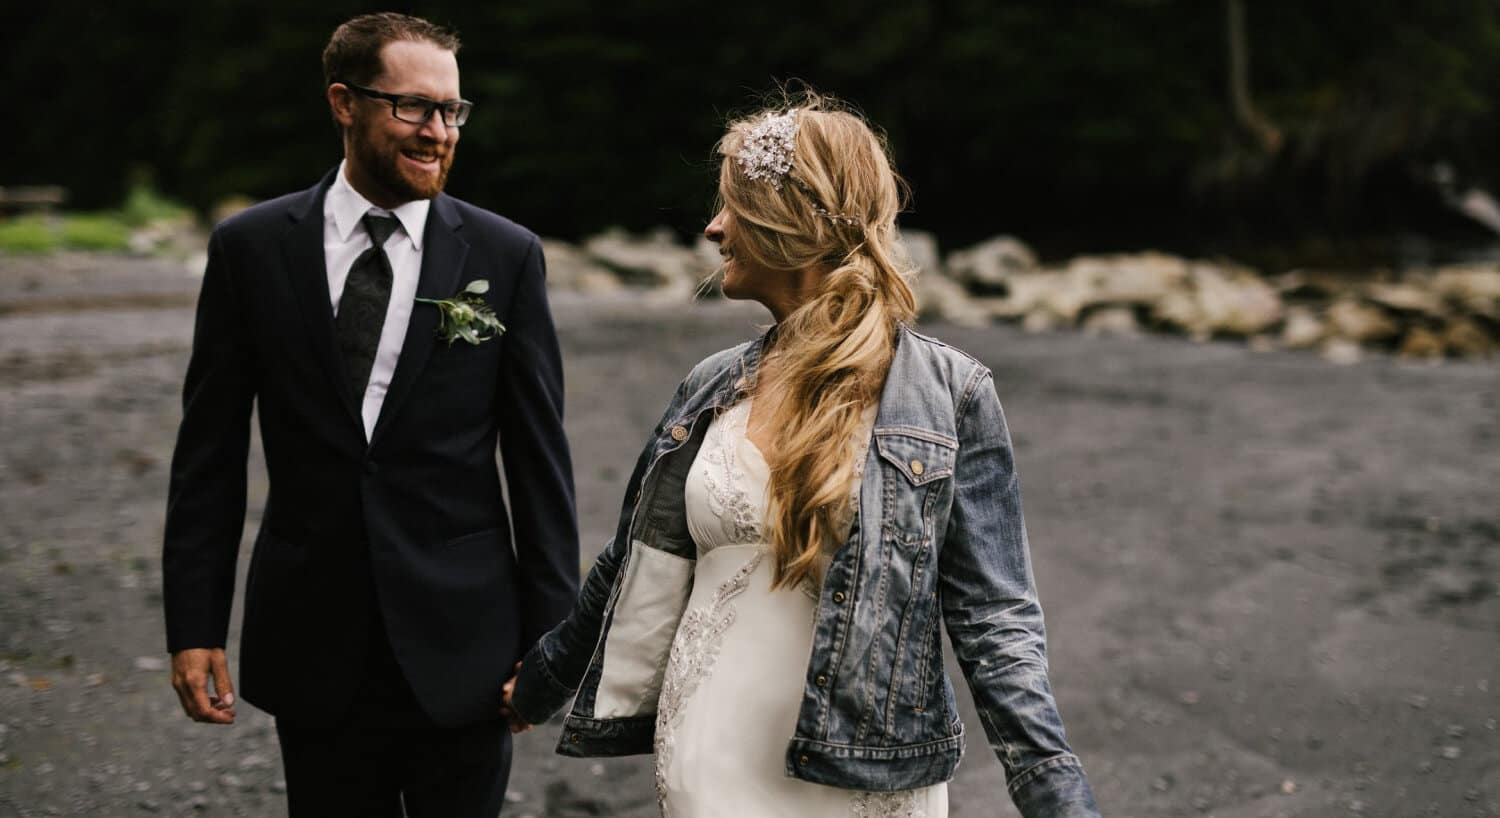 bride in gown wearing blue jean jacket looking over shoulder toward groom wearing blue suit and tie with big smile